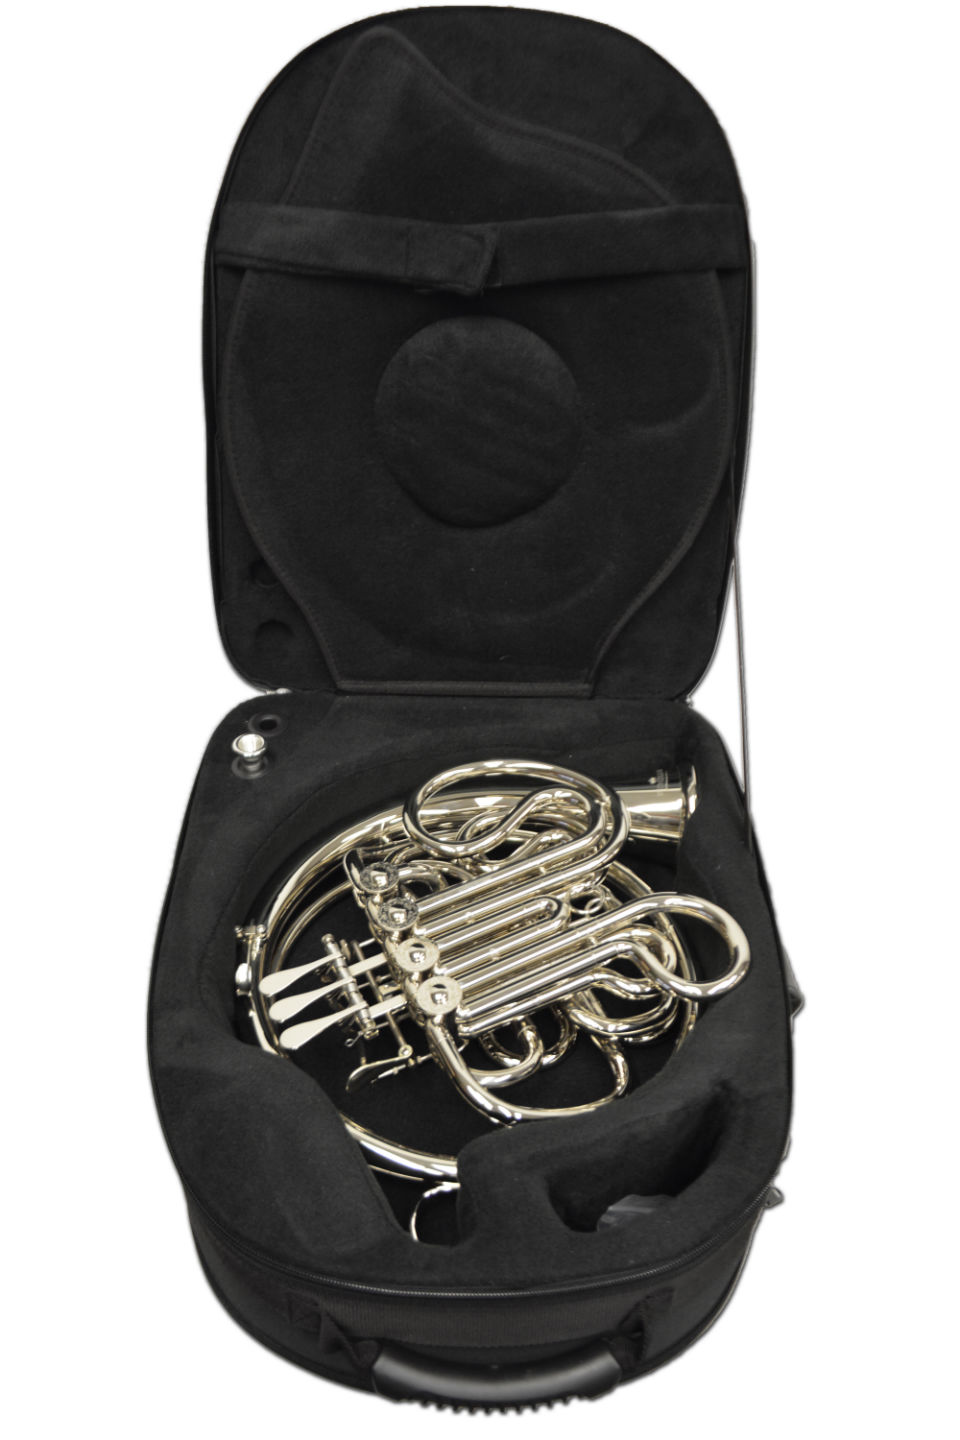 American Elite VI French Horn w/ Detachable Bell – Nickel